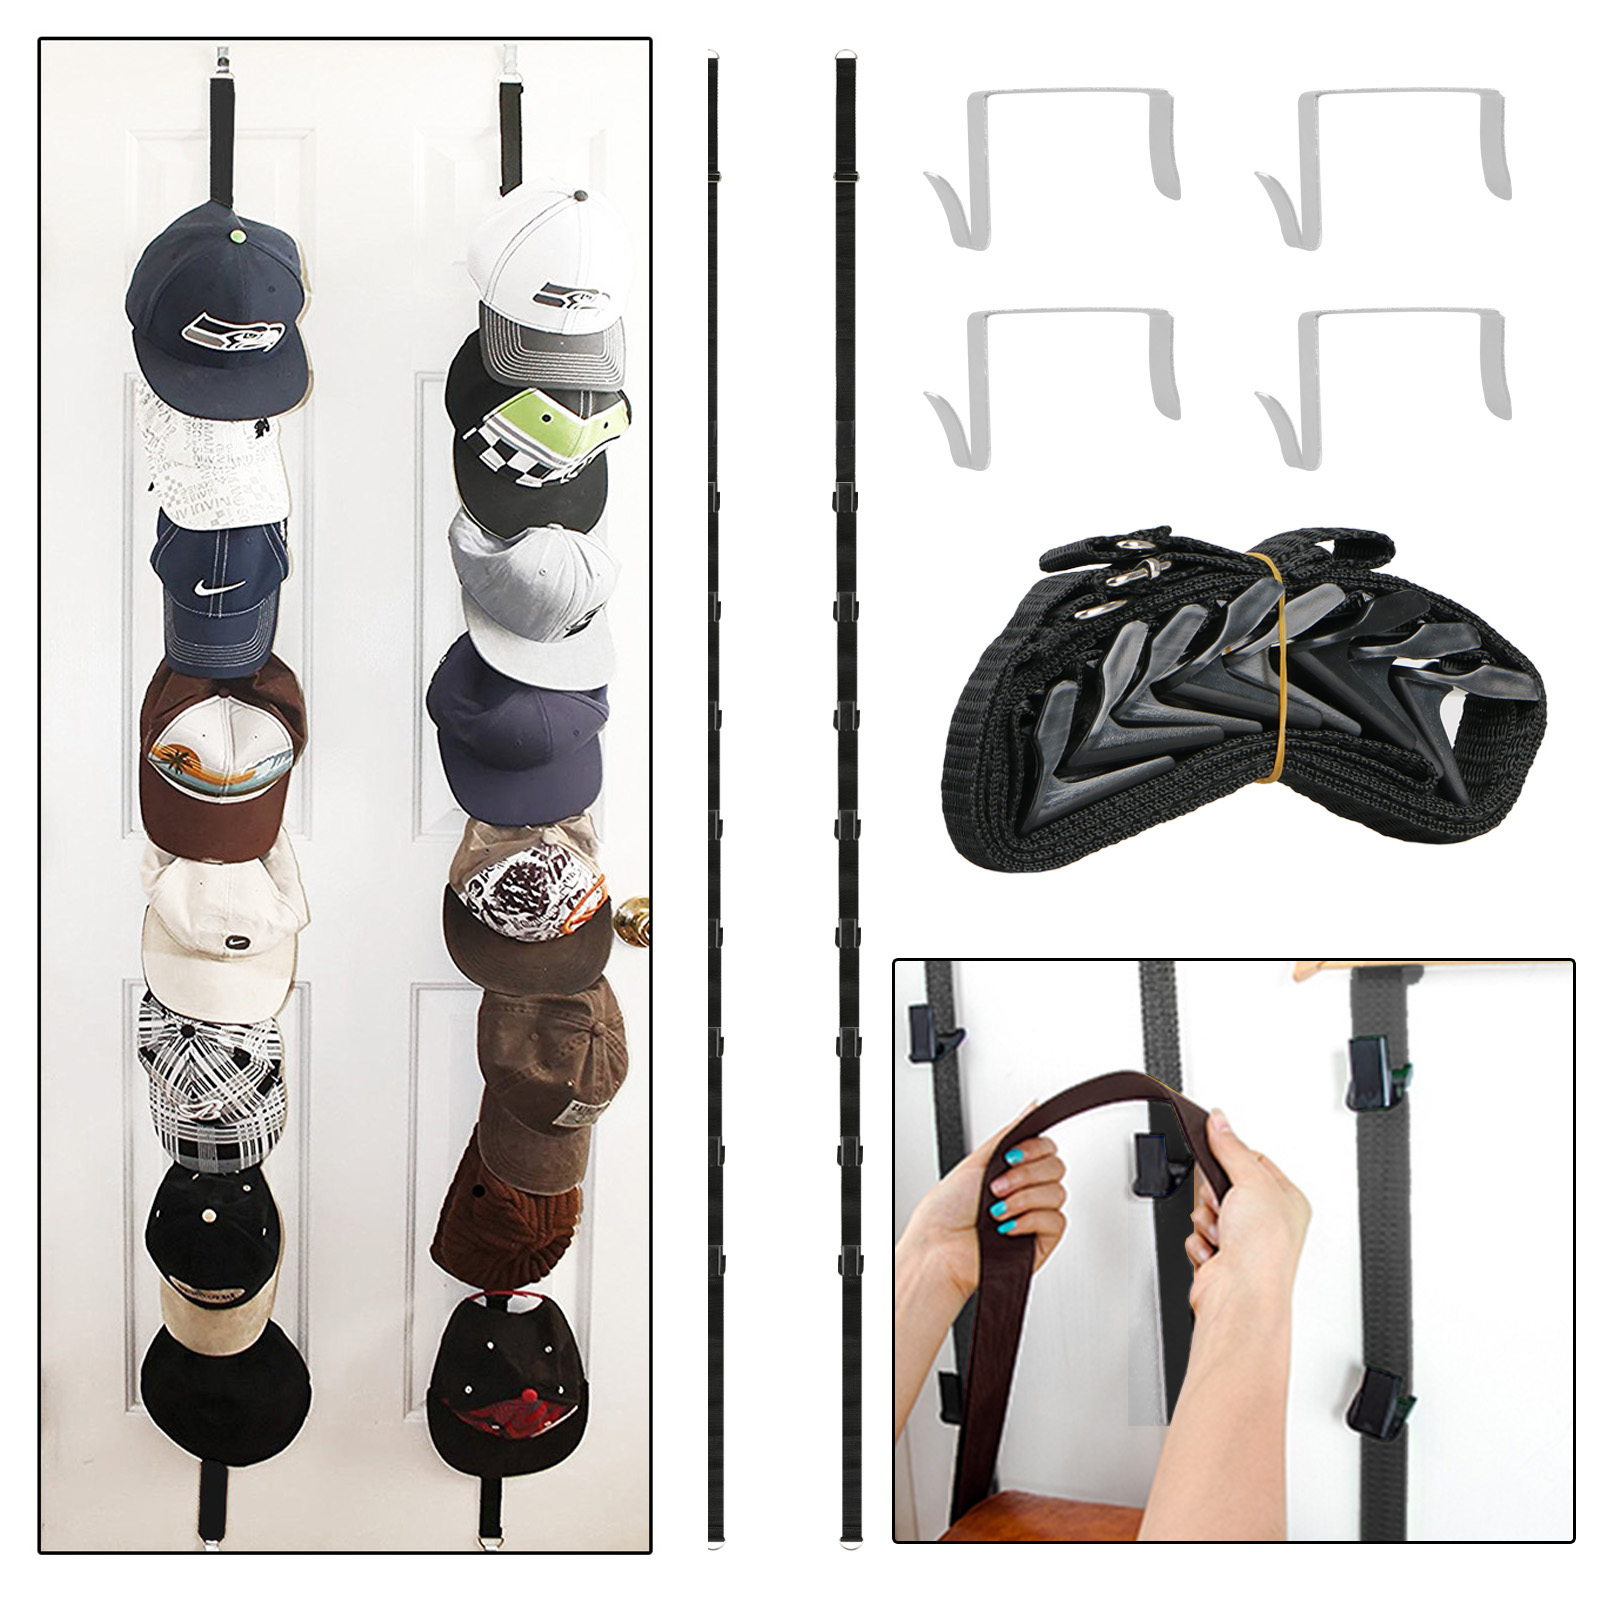 EEEKit 2-pack Over the Door Purse Clip Hanger Hat Rack Storage Organizer Holders Hook